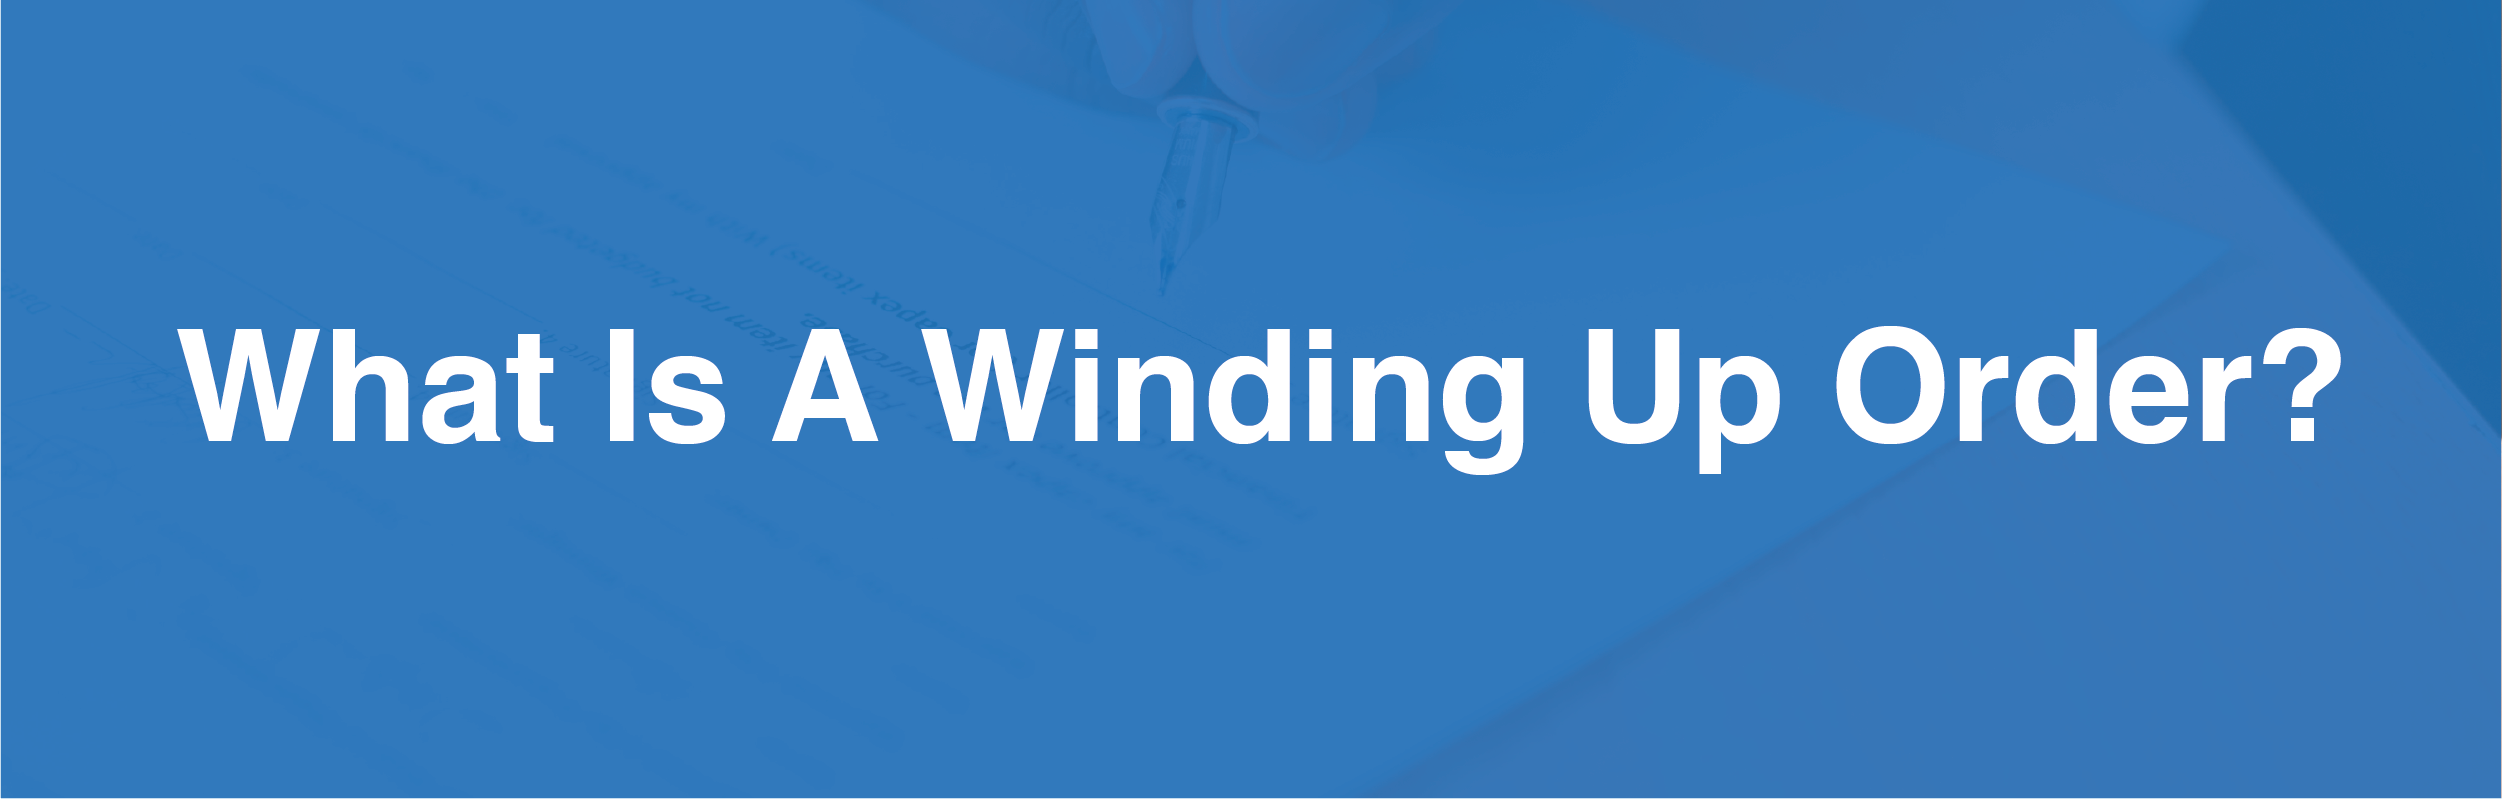 What is winding up order banner